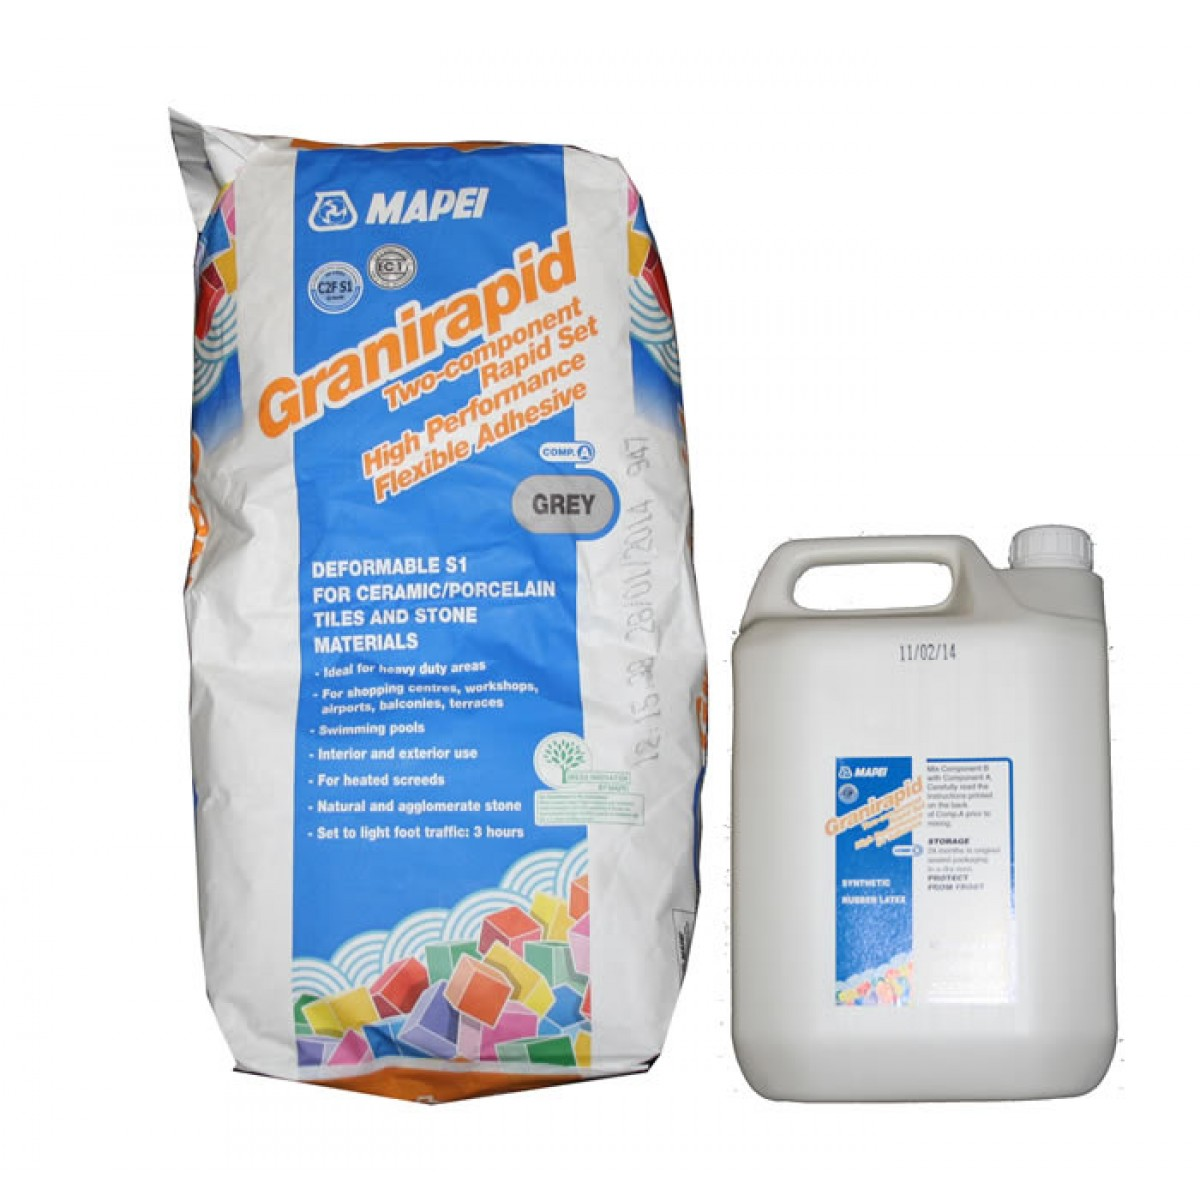 Mortar-Mapei-Granirapid-Grey